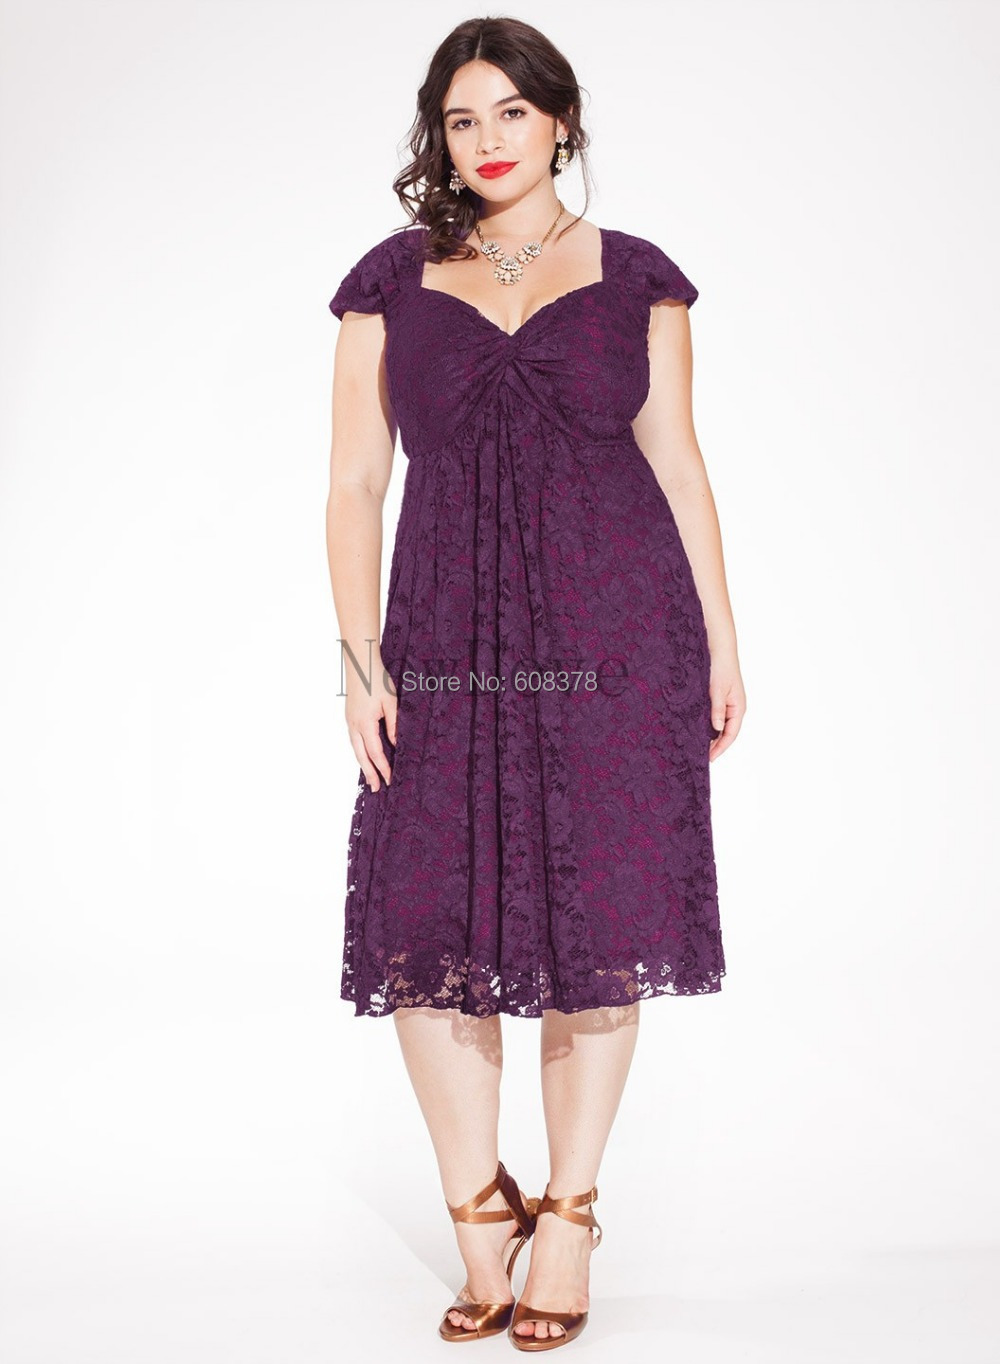 Freeshipping exquisite purple short cap sleeve lace tea for Plus size dresses weddings and proms